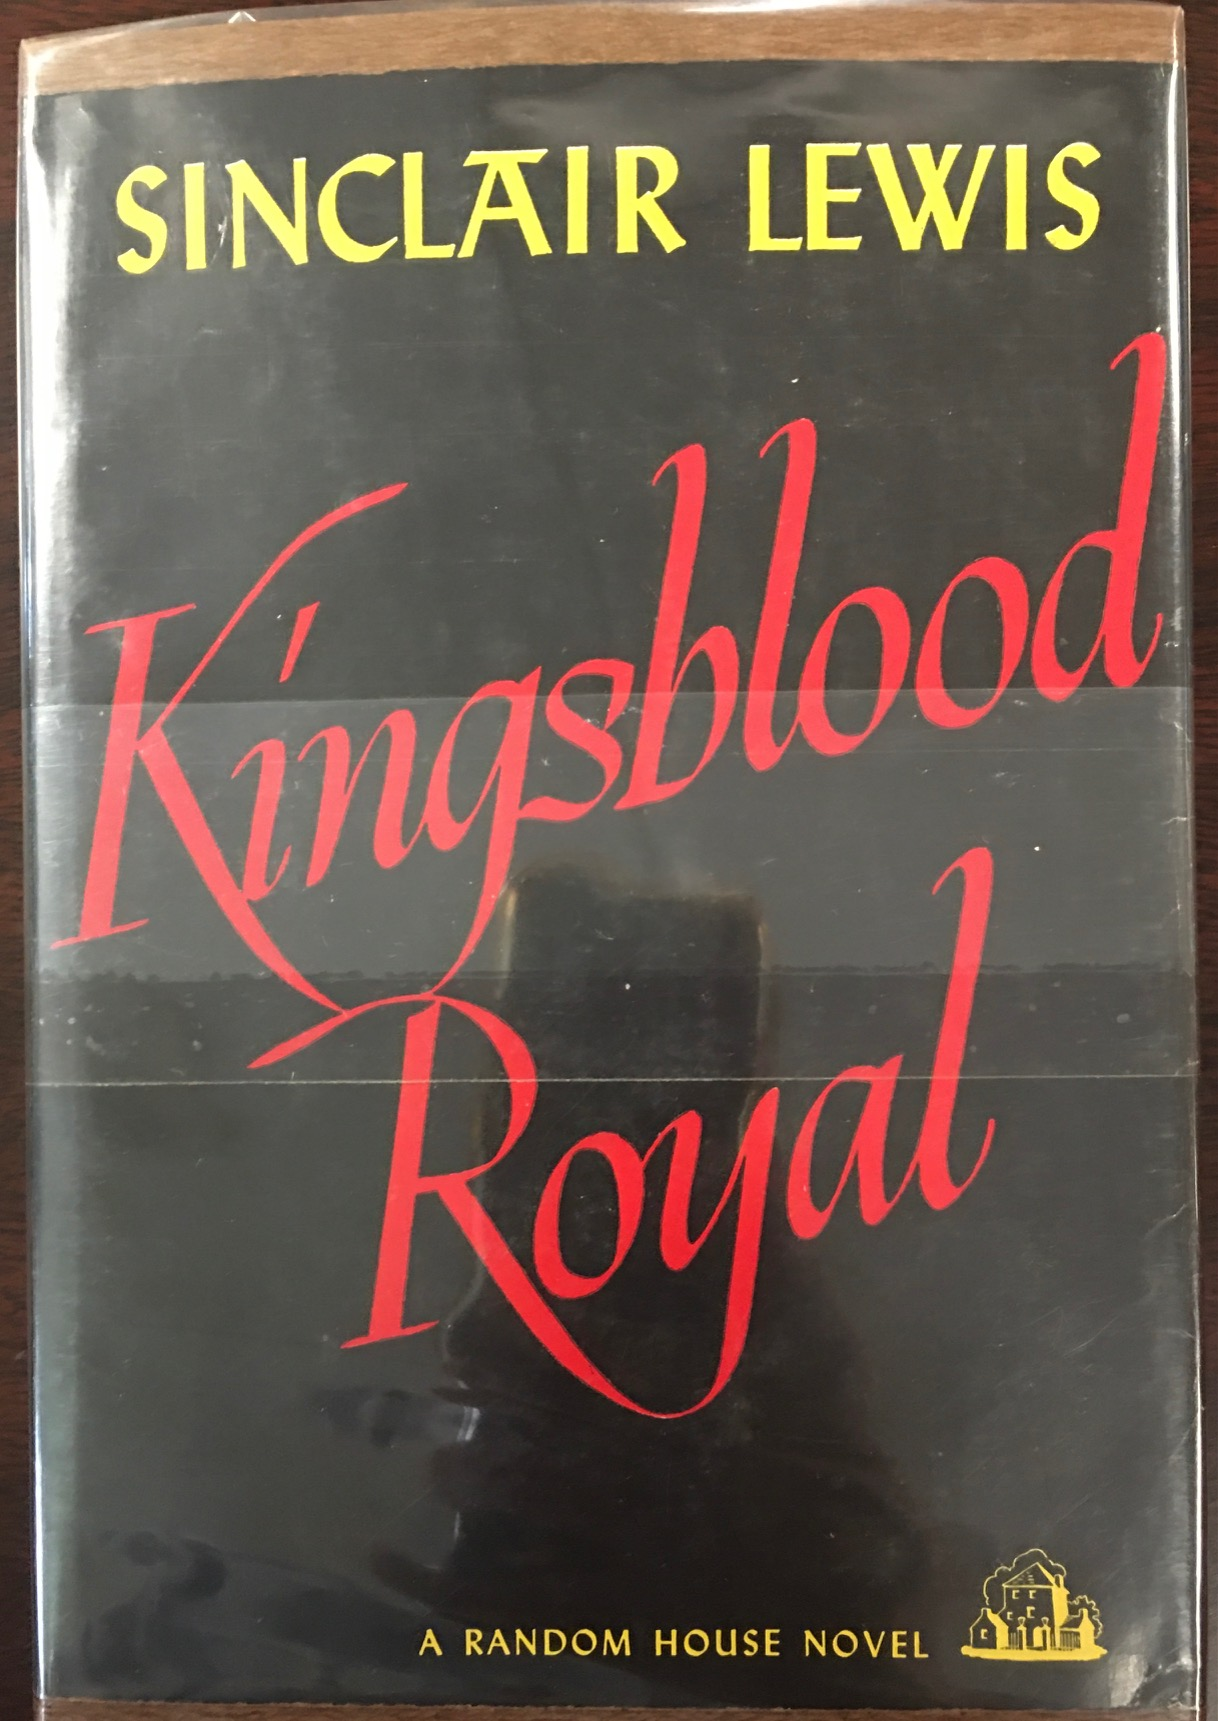 Image for Kingsblood Royal